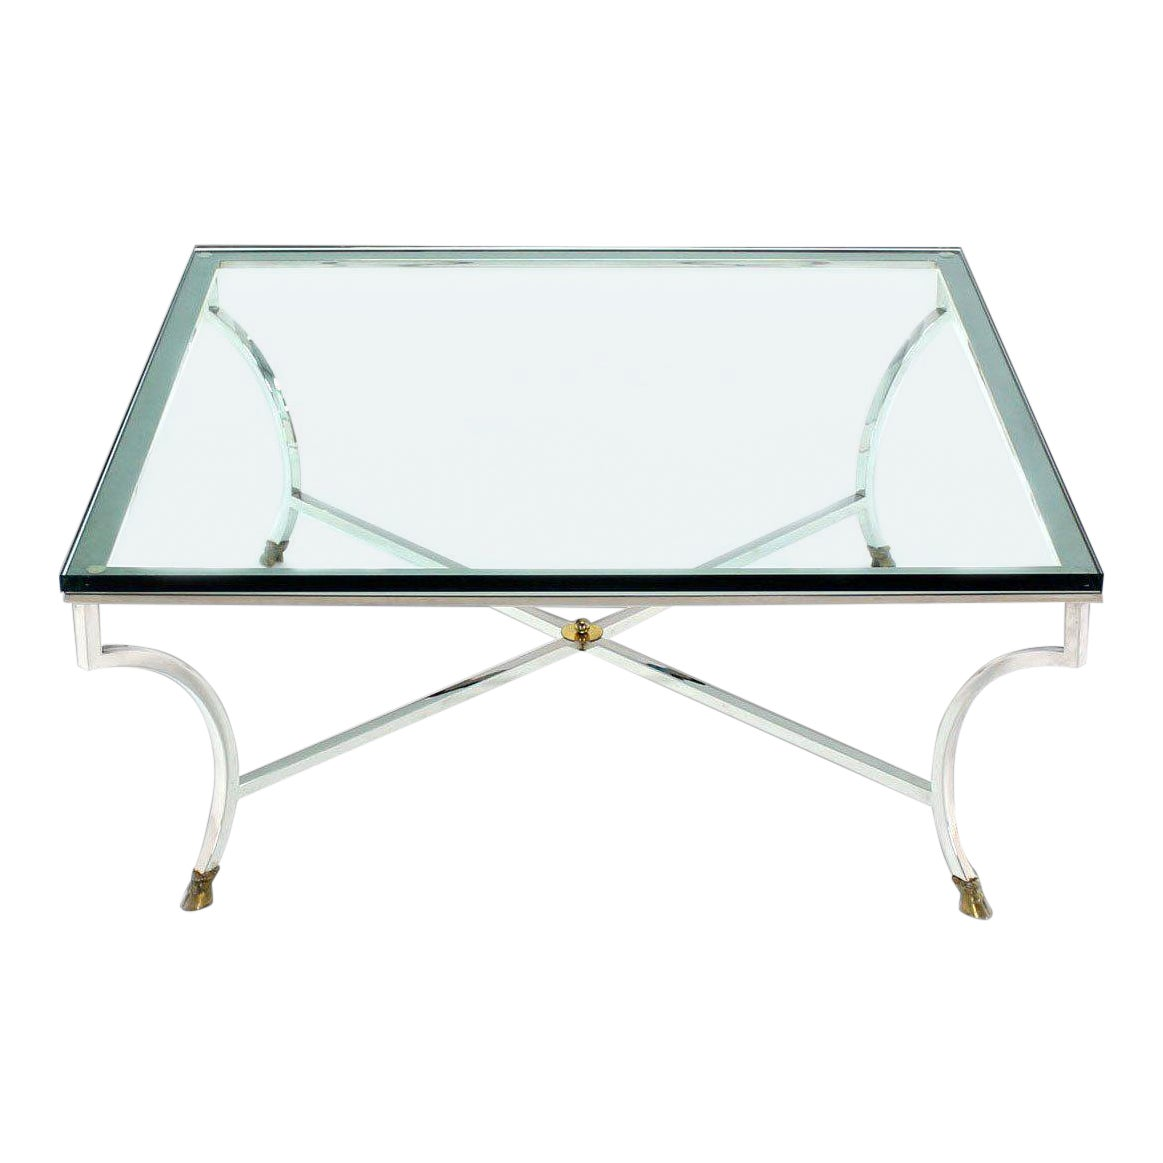 Mid Century Modern Glass Top Square Coffee Table With Chrome And